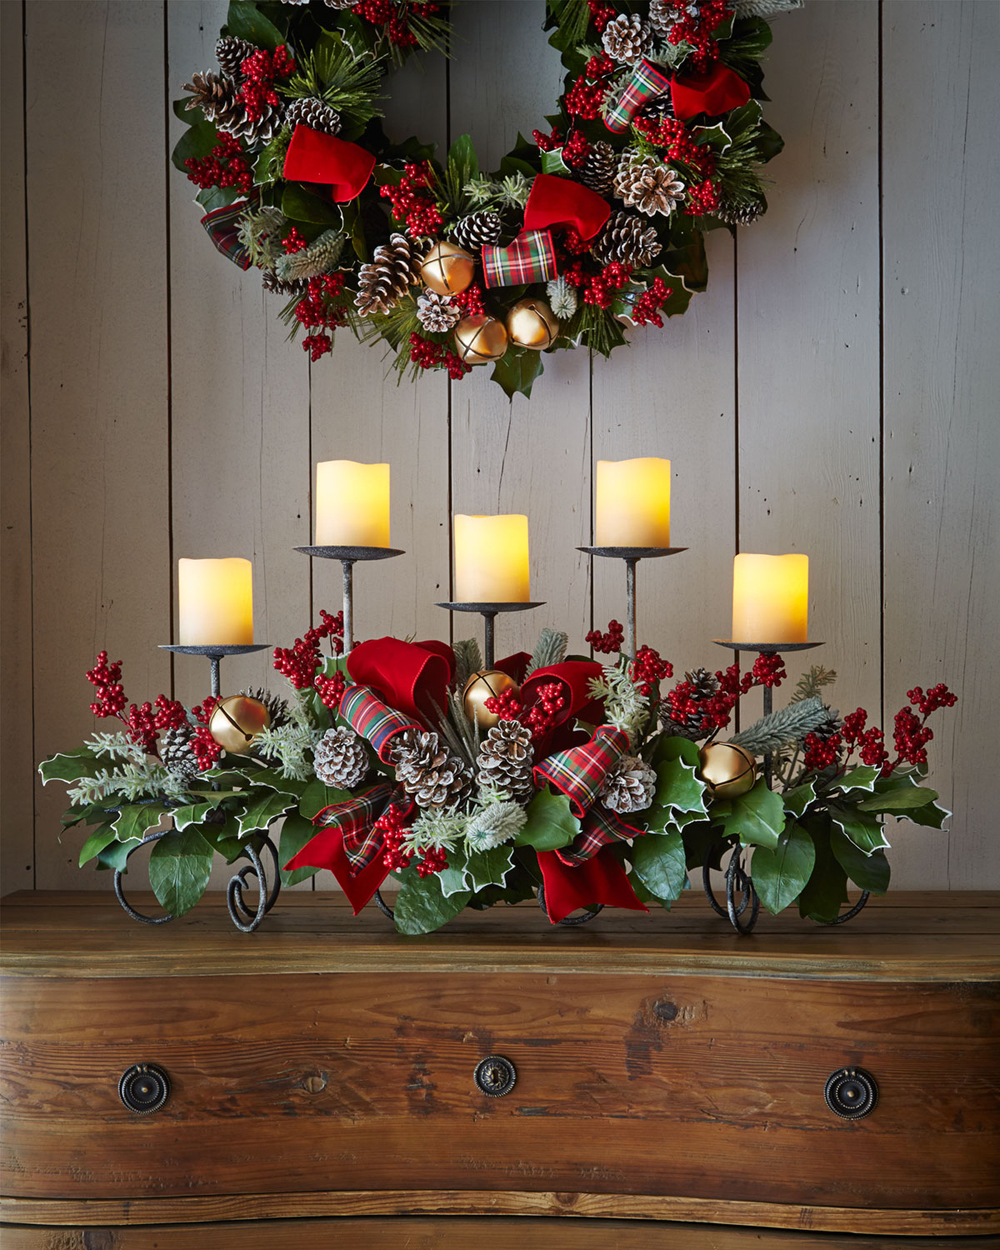 christmas rustic decoration ideas - Christmas Decorations Ideas 2017